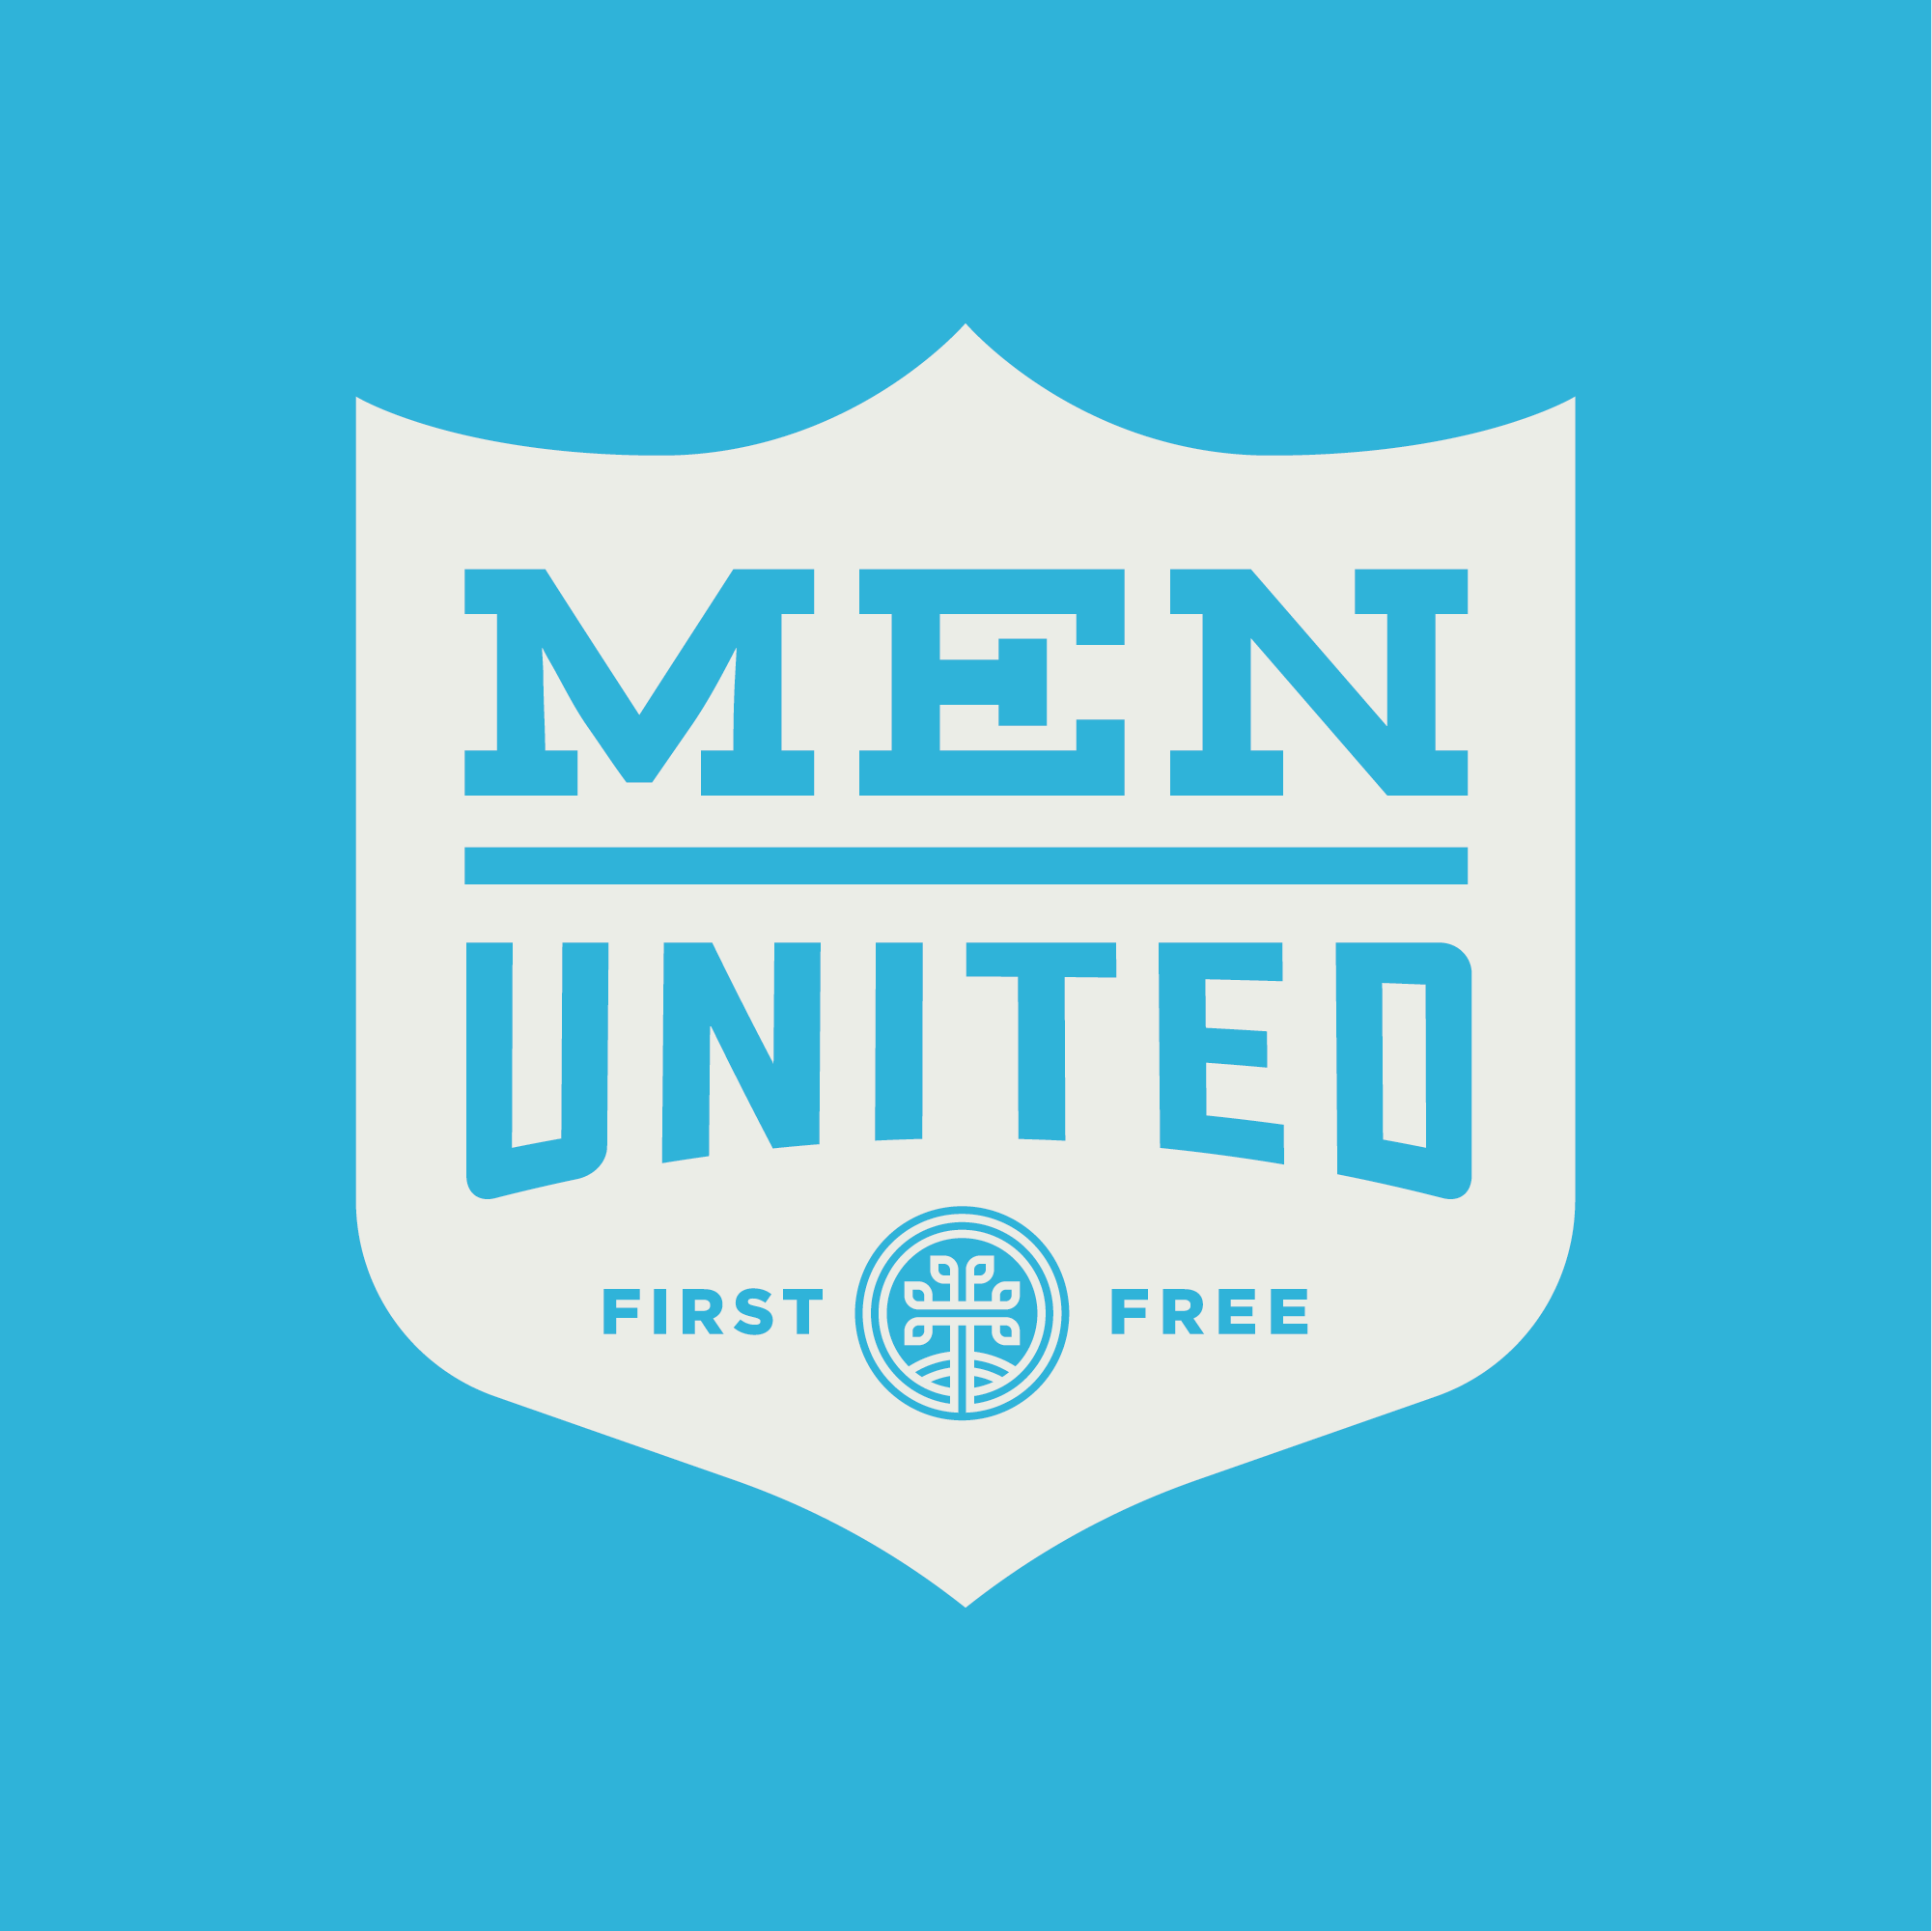 Men United Artboard 2